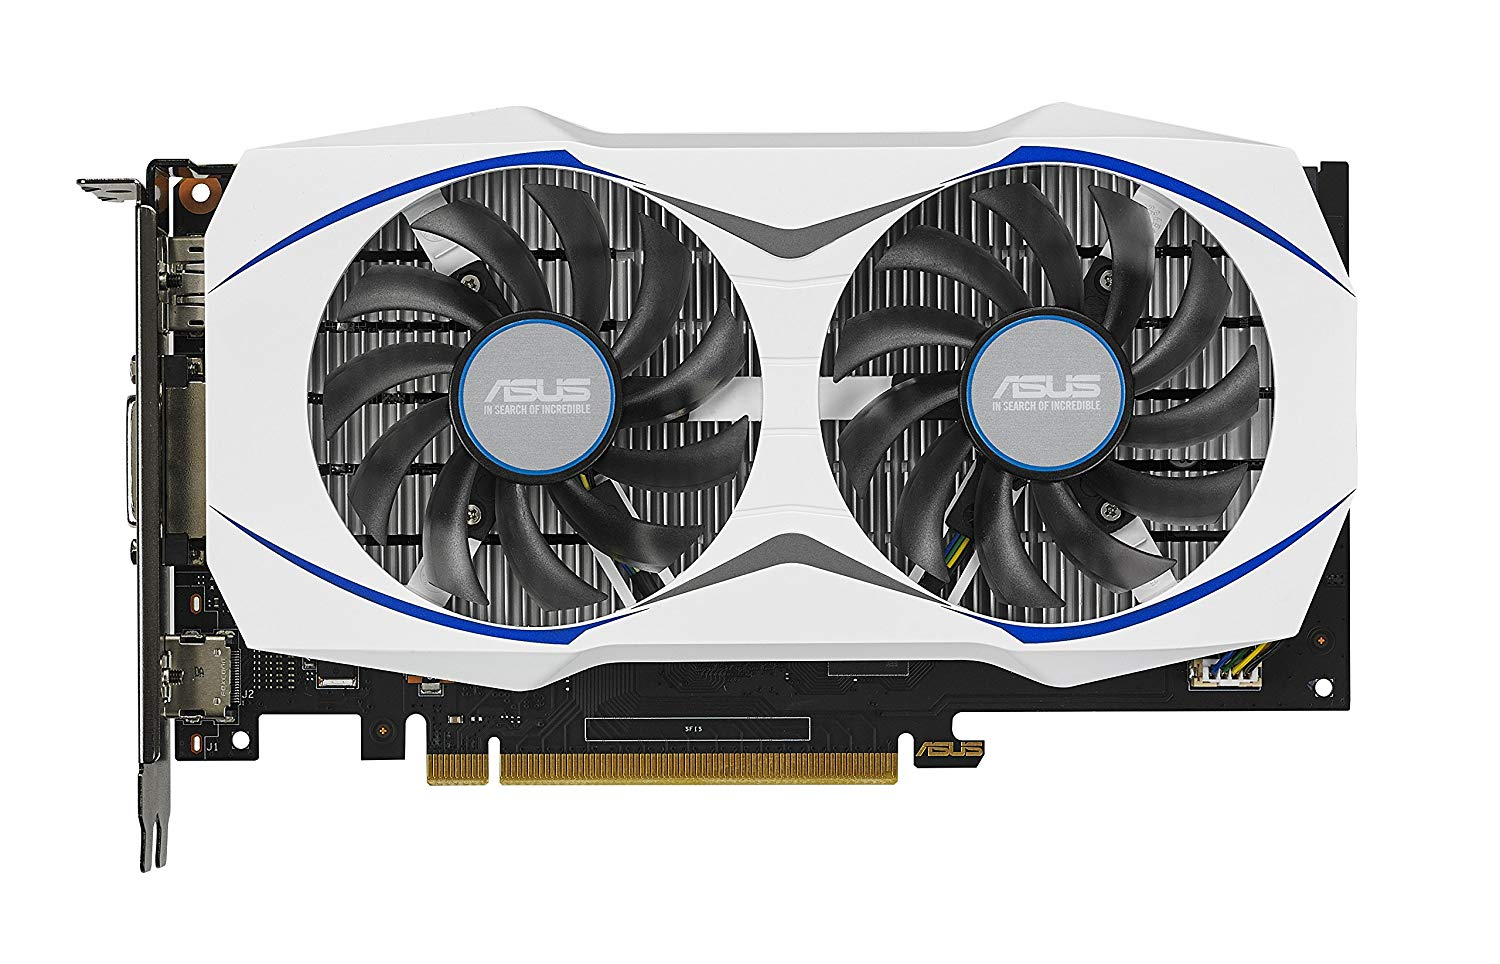 VGA CARD ASUS GTX950-OC-2GD5 DUAL FAN. WHITE